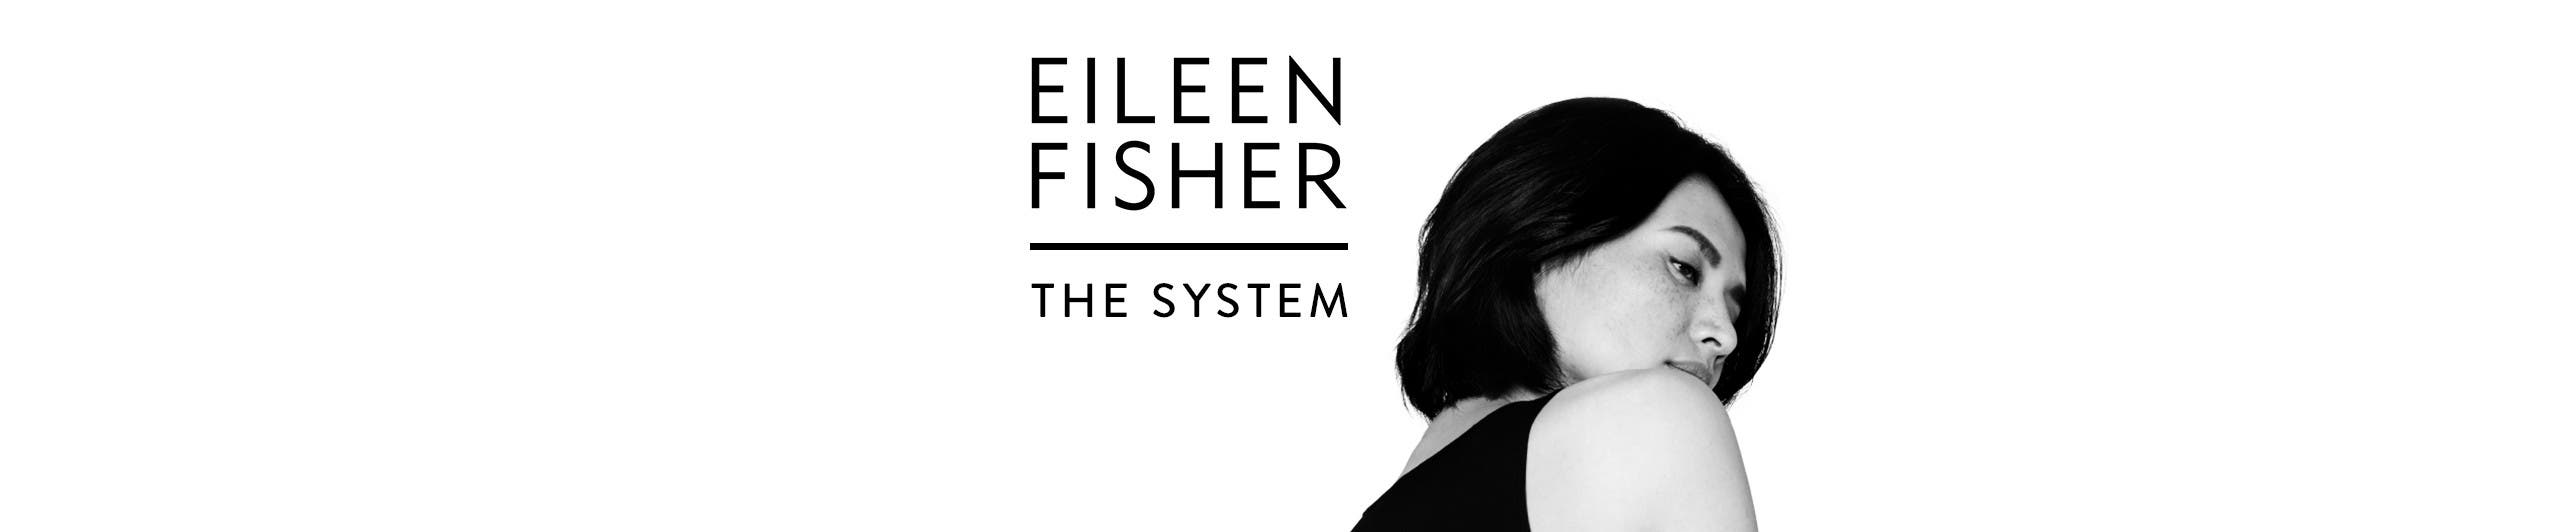 Eileen Fisher: The System collection.